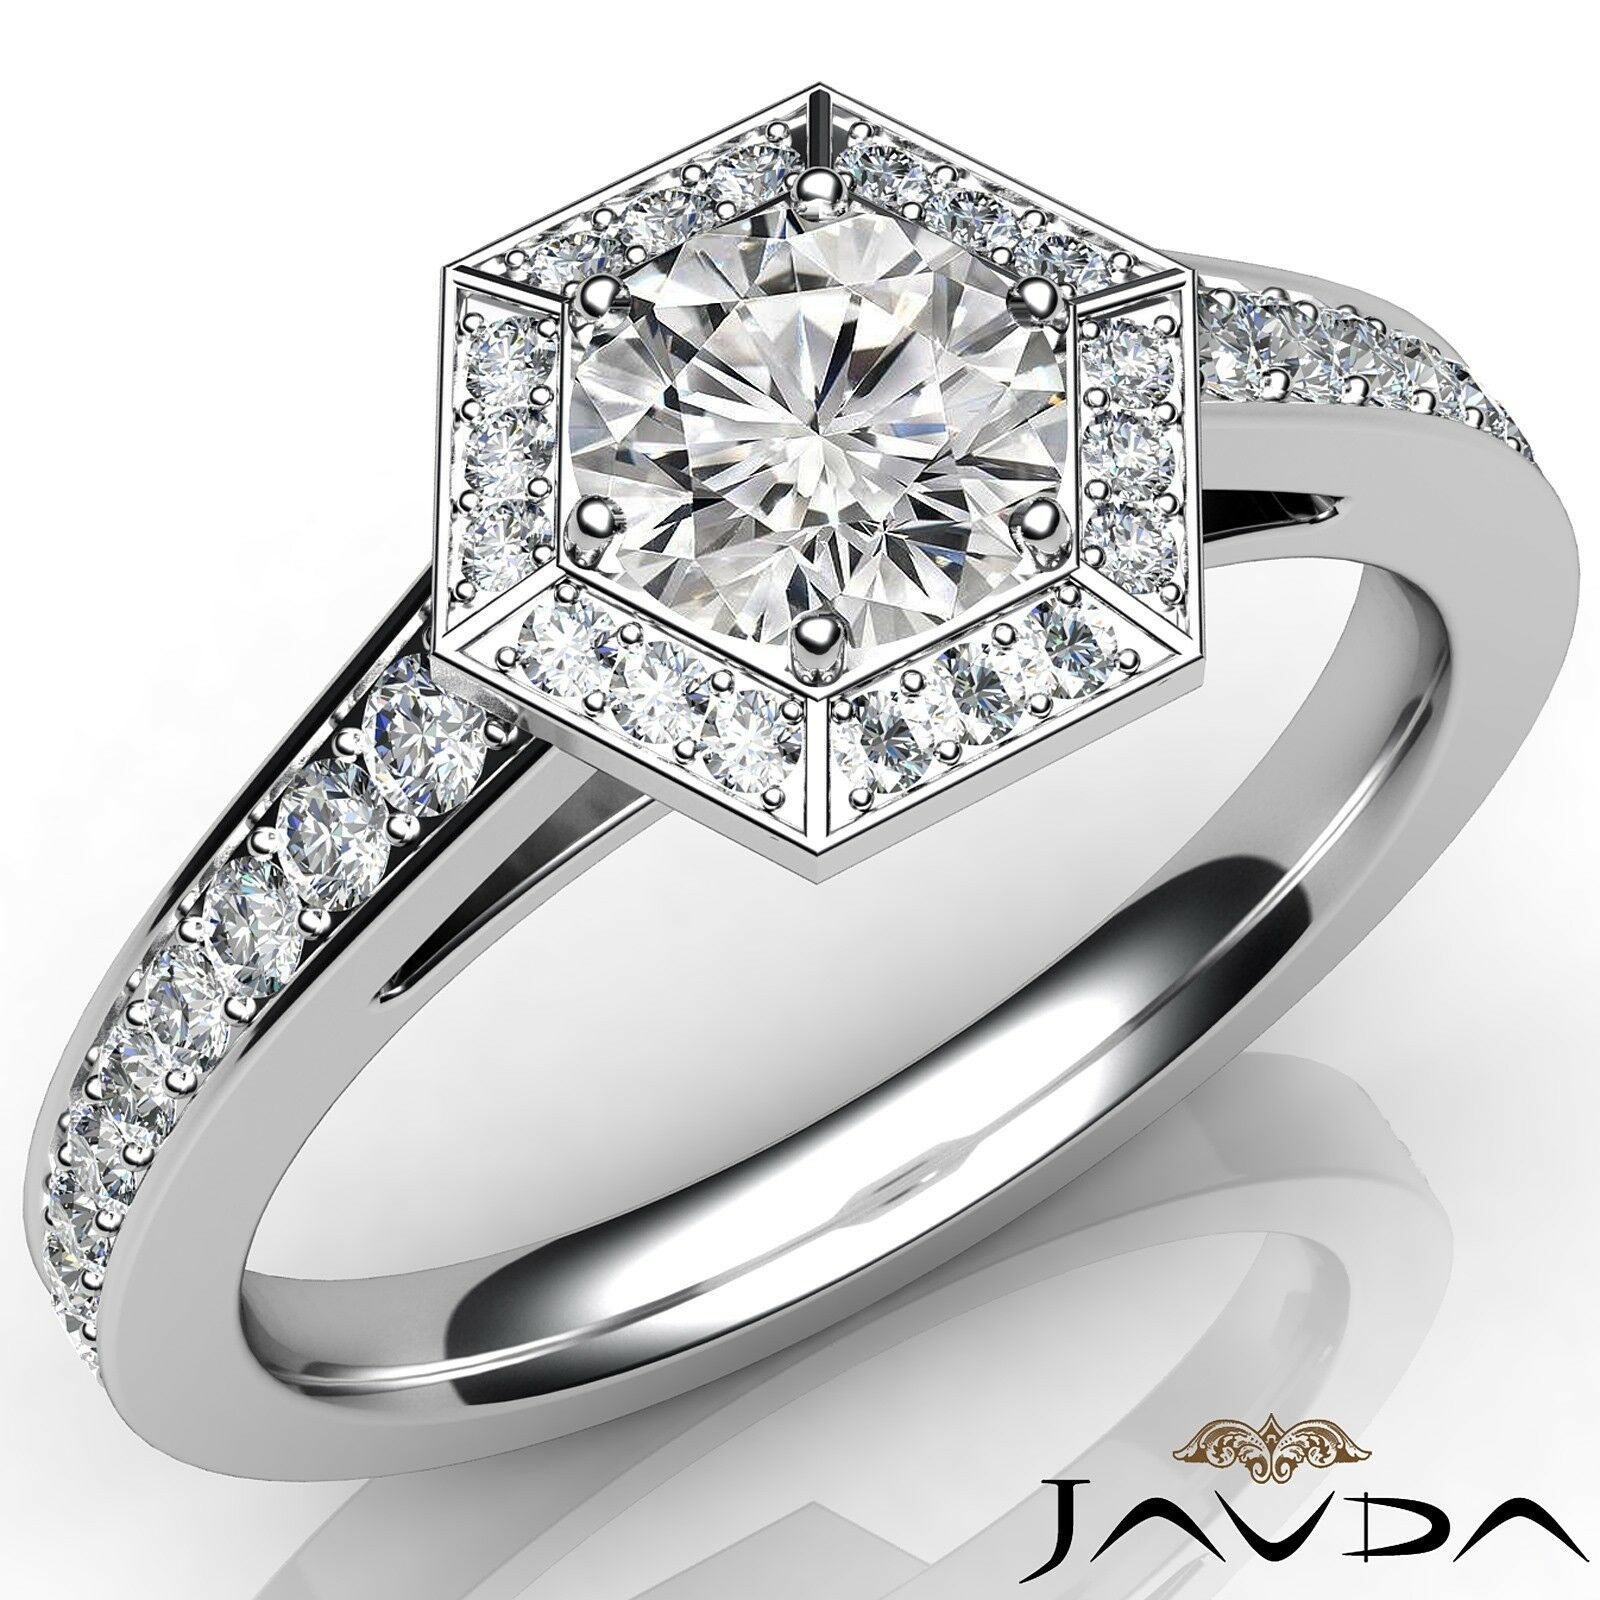 1.3ctw Halo Pave Set Round Diamond Engagement Ring GIA H-VVS1 White Gold Rings